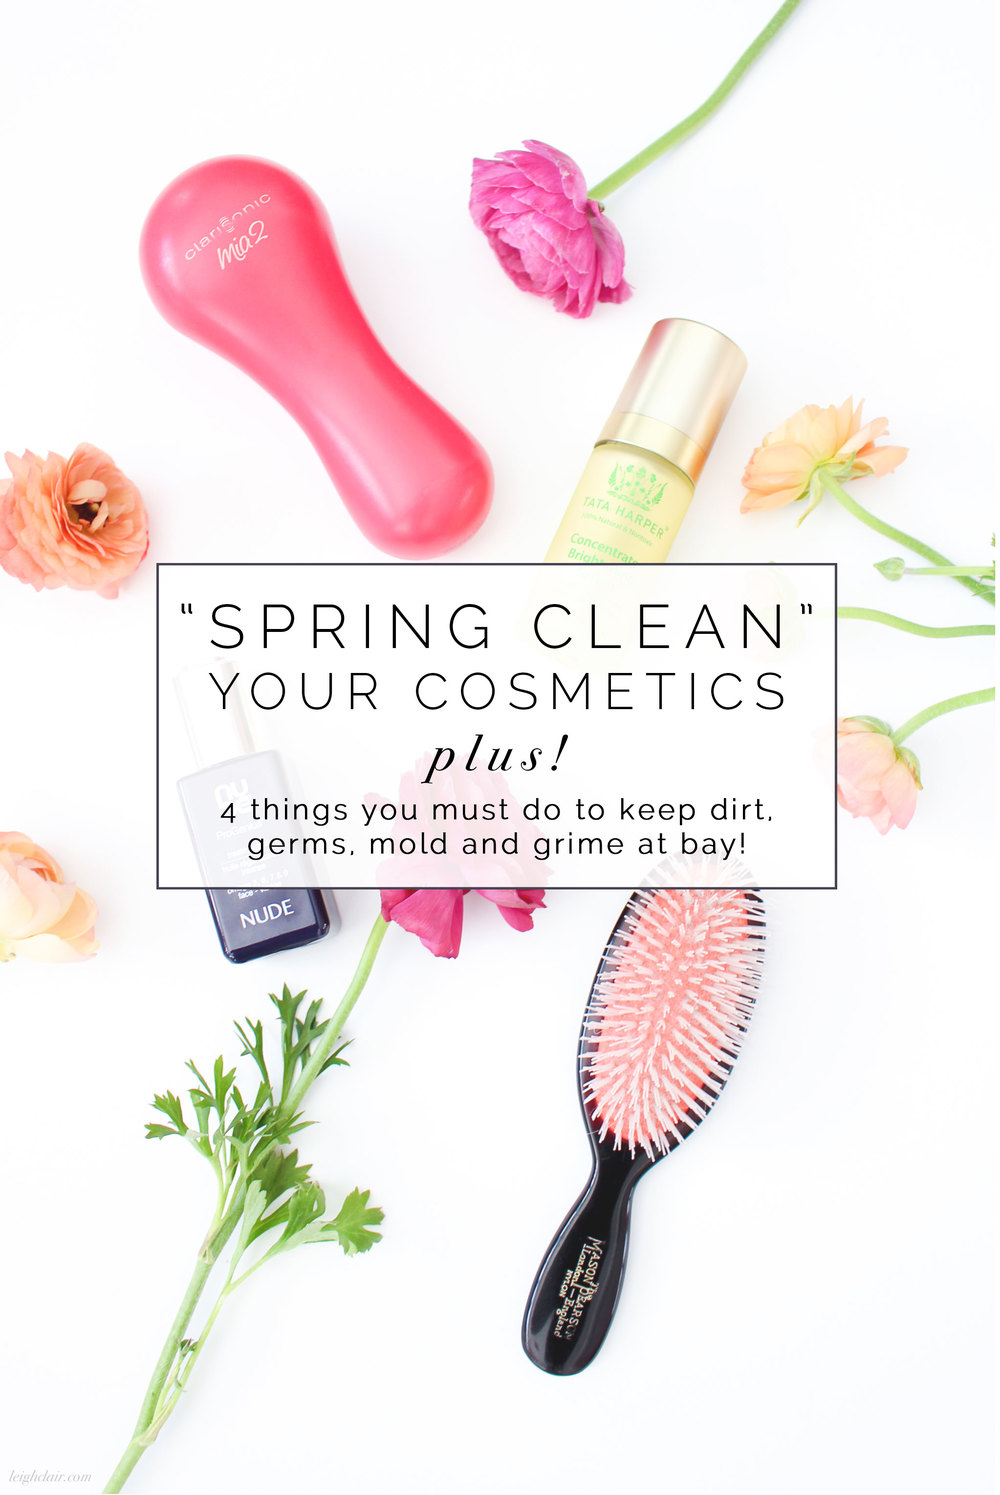 The importance of cleaning your cosmetics, tools, and devices.